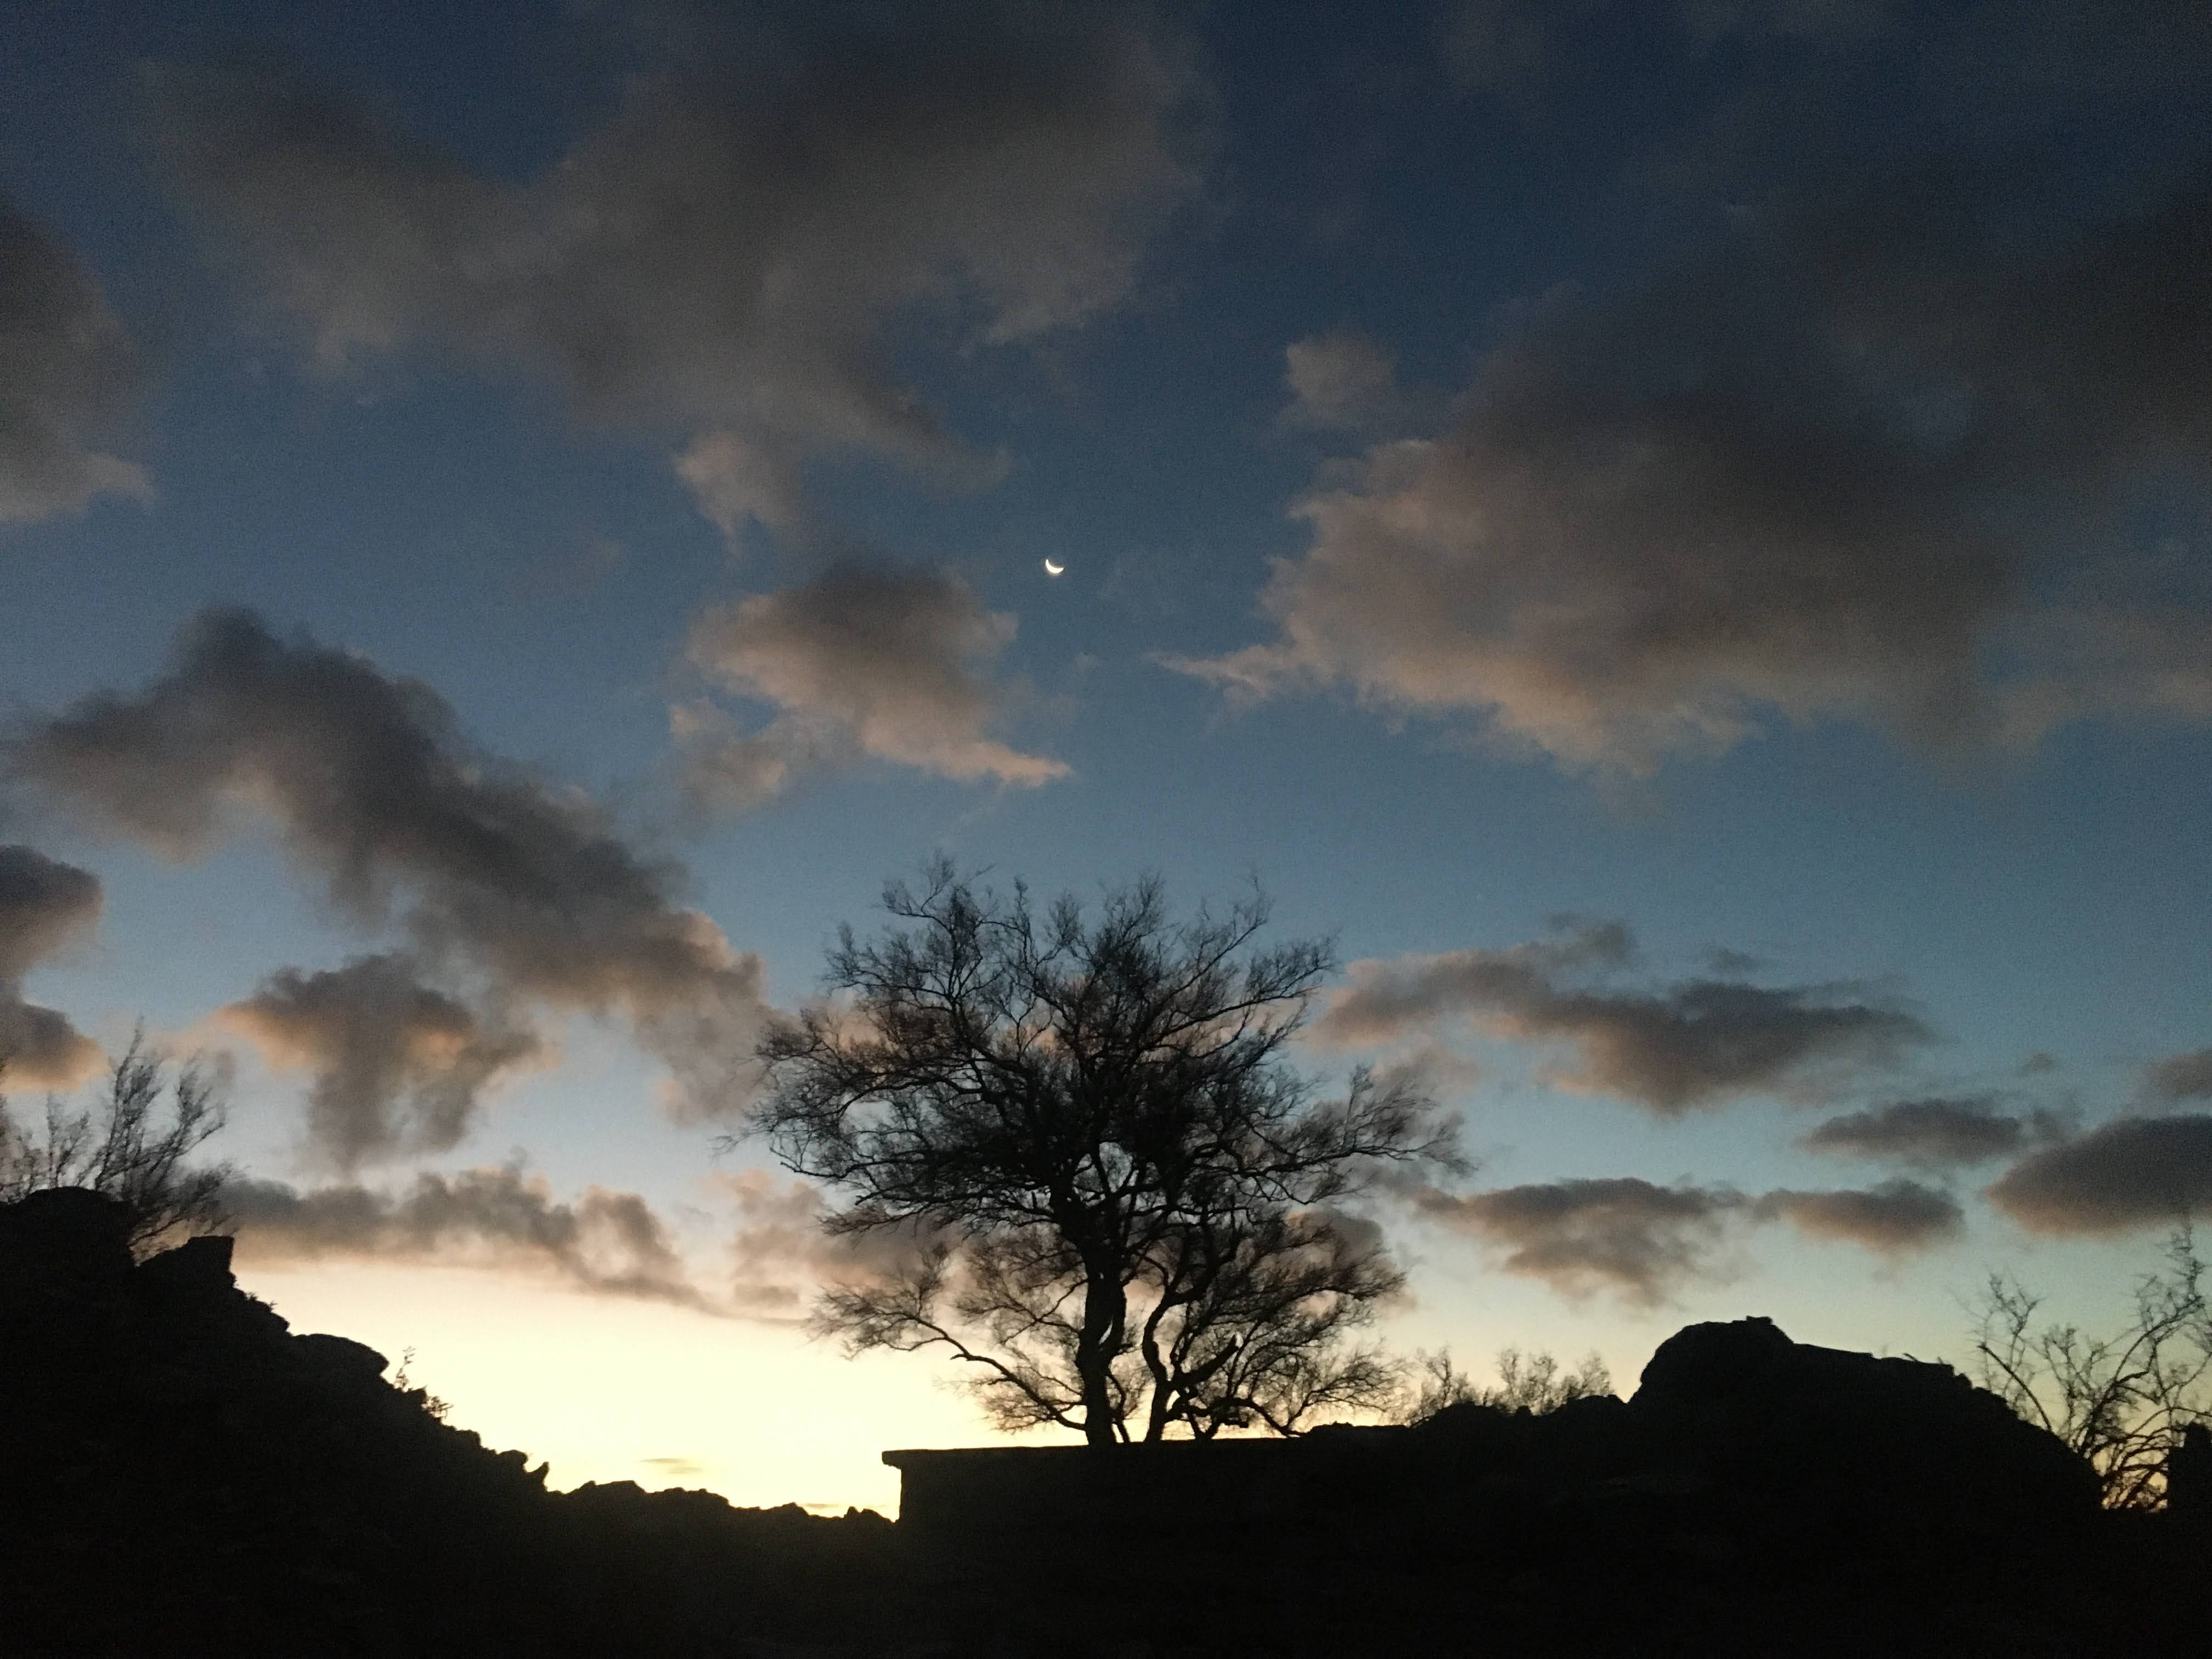 silhouette of mountain with partly cloudy sky in background